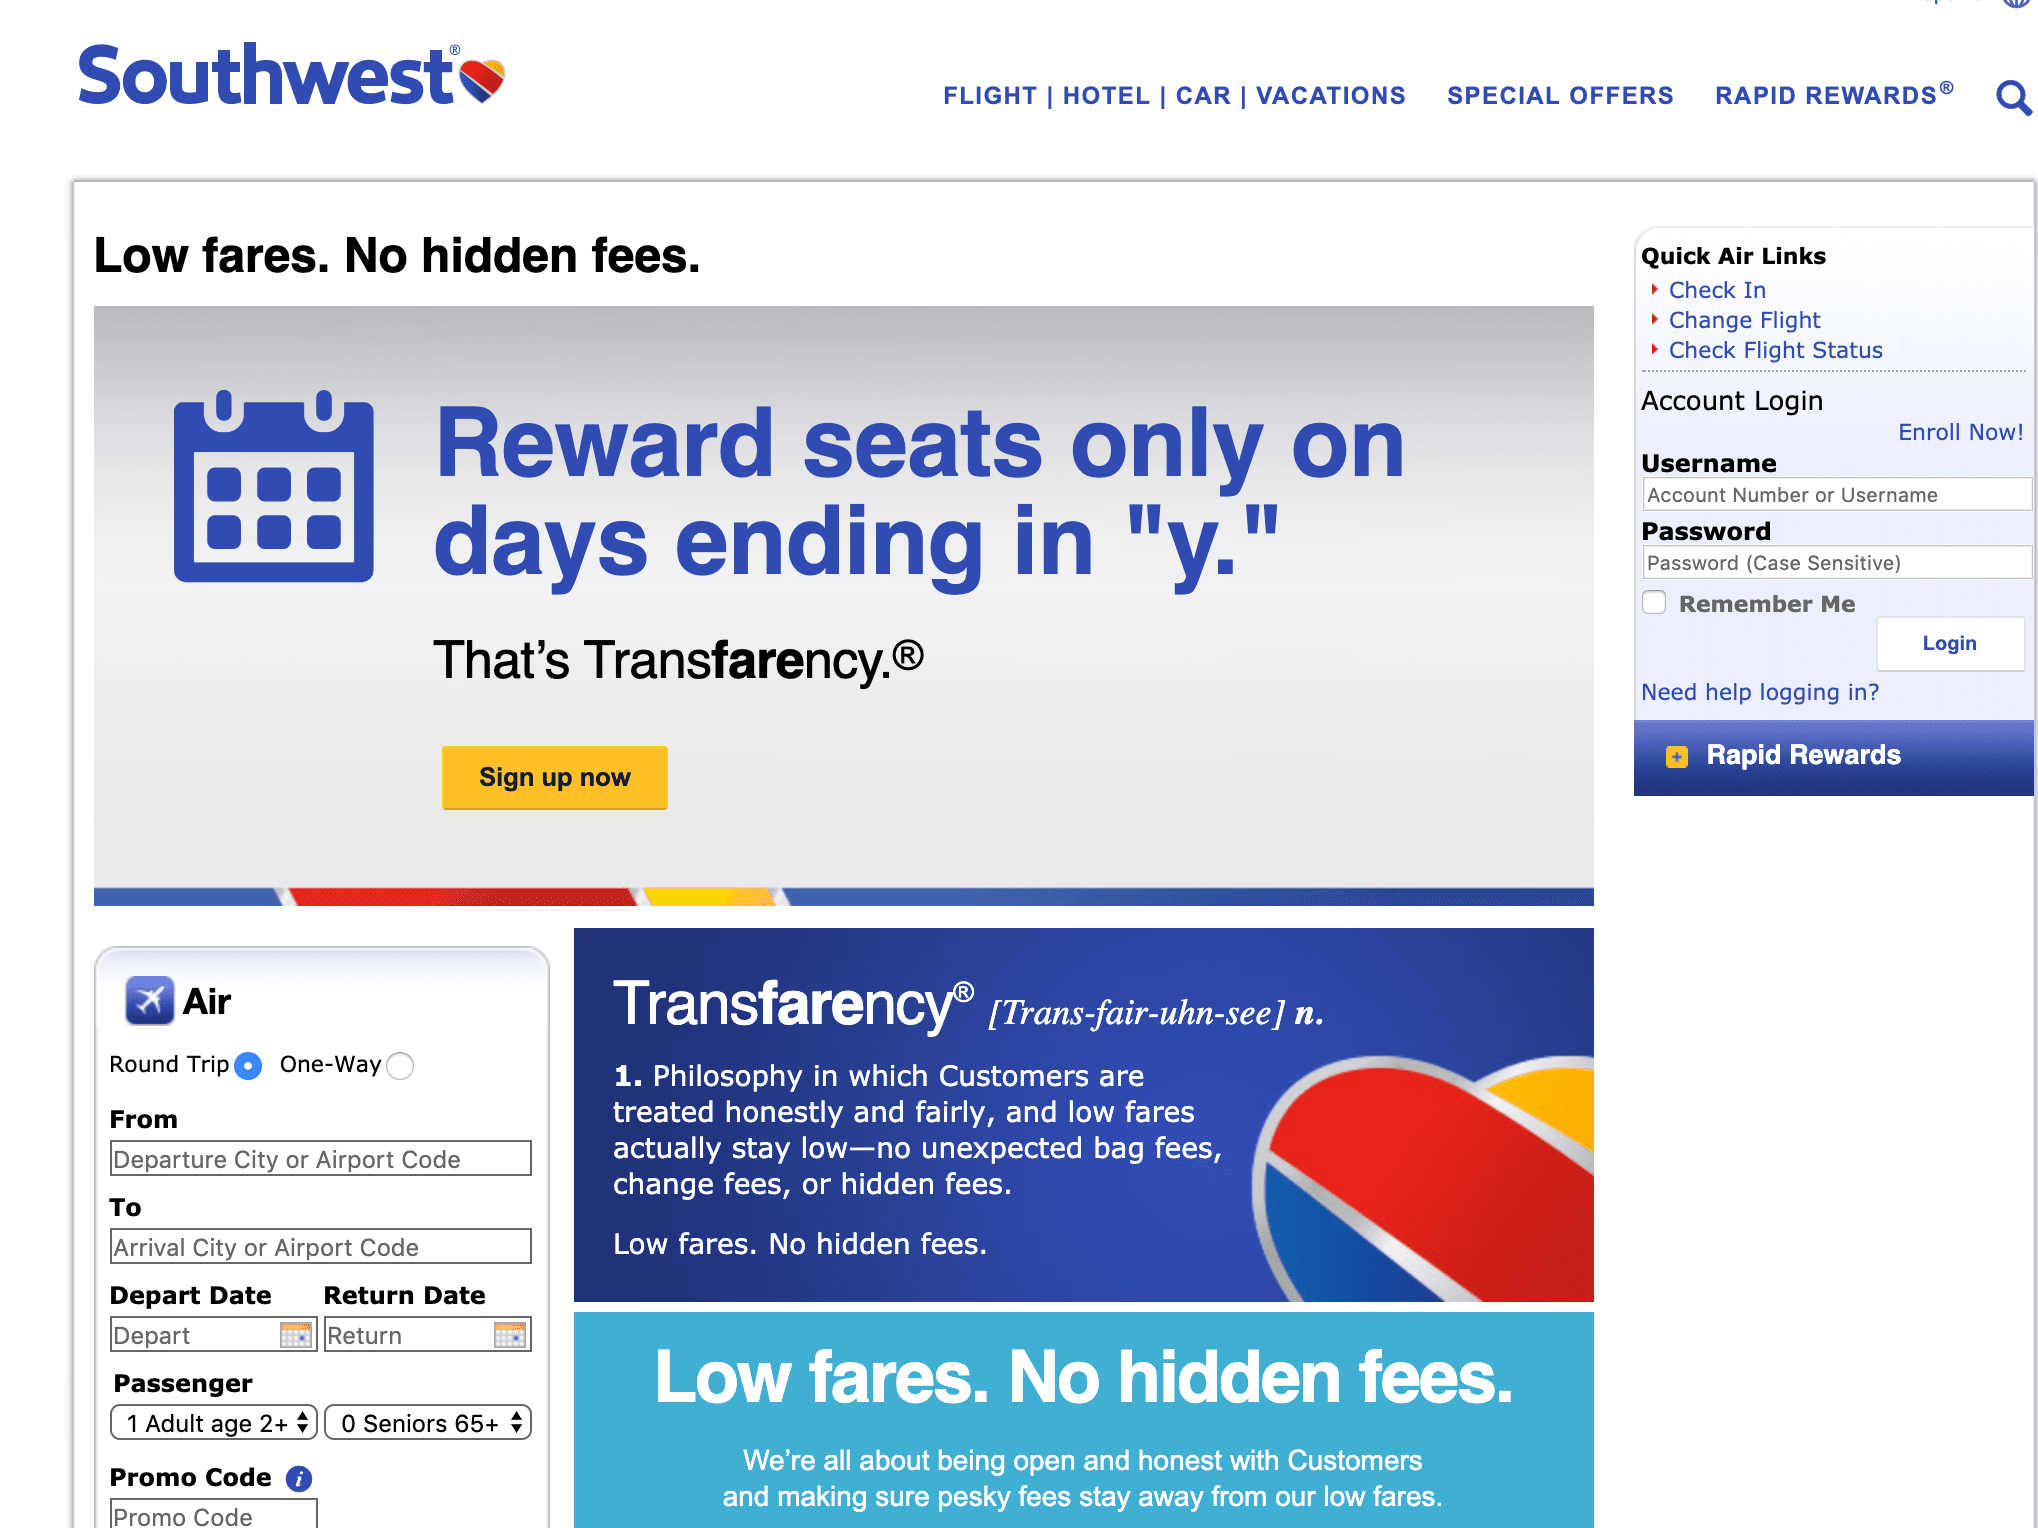 brand-messaging-examples-southwest-airlines